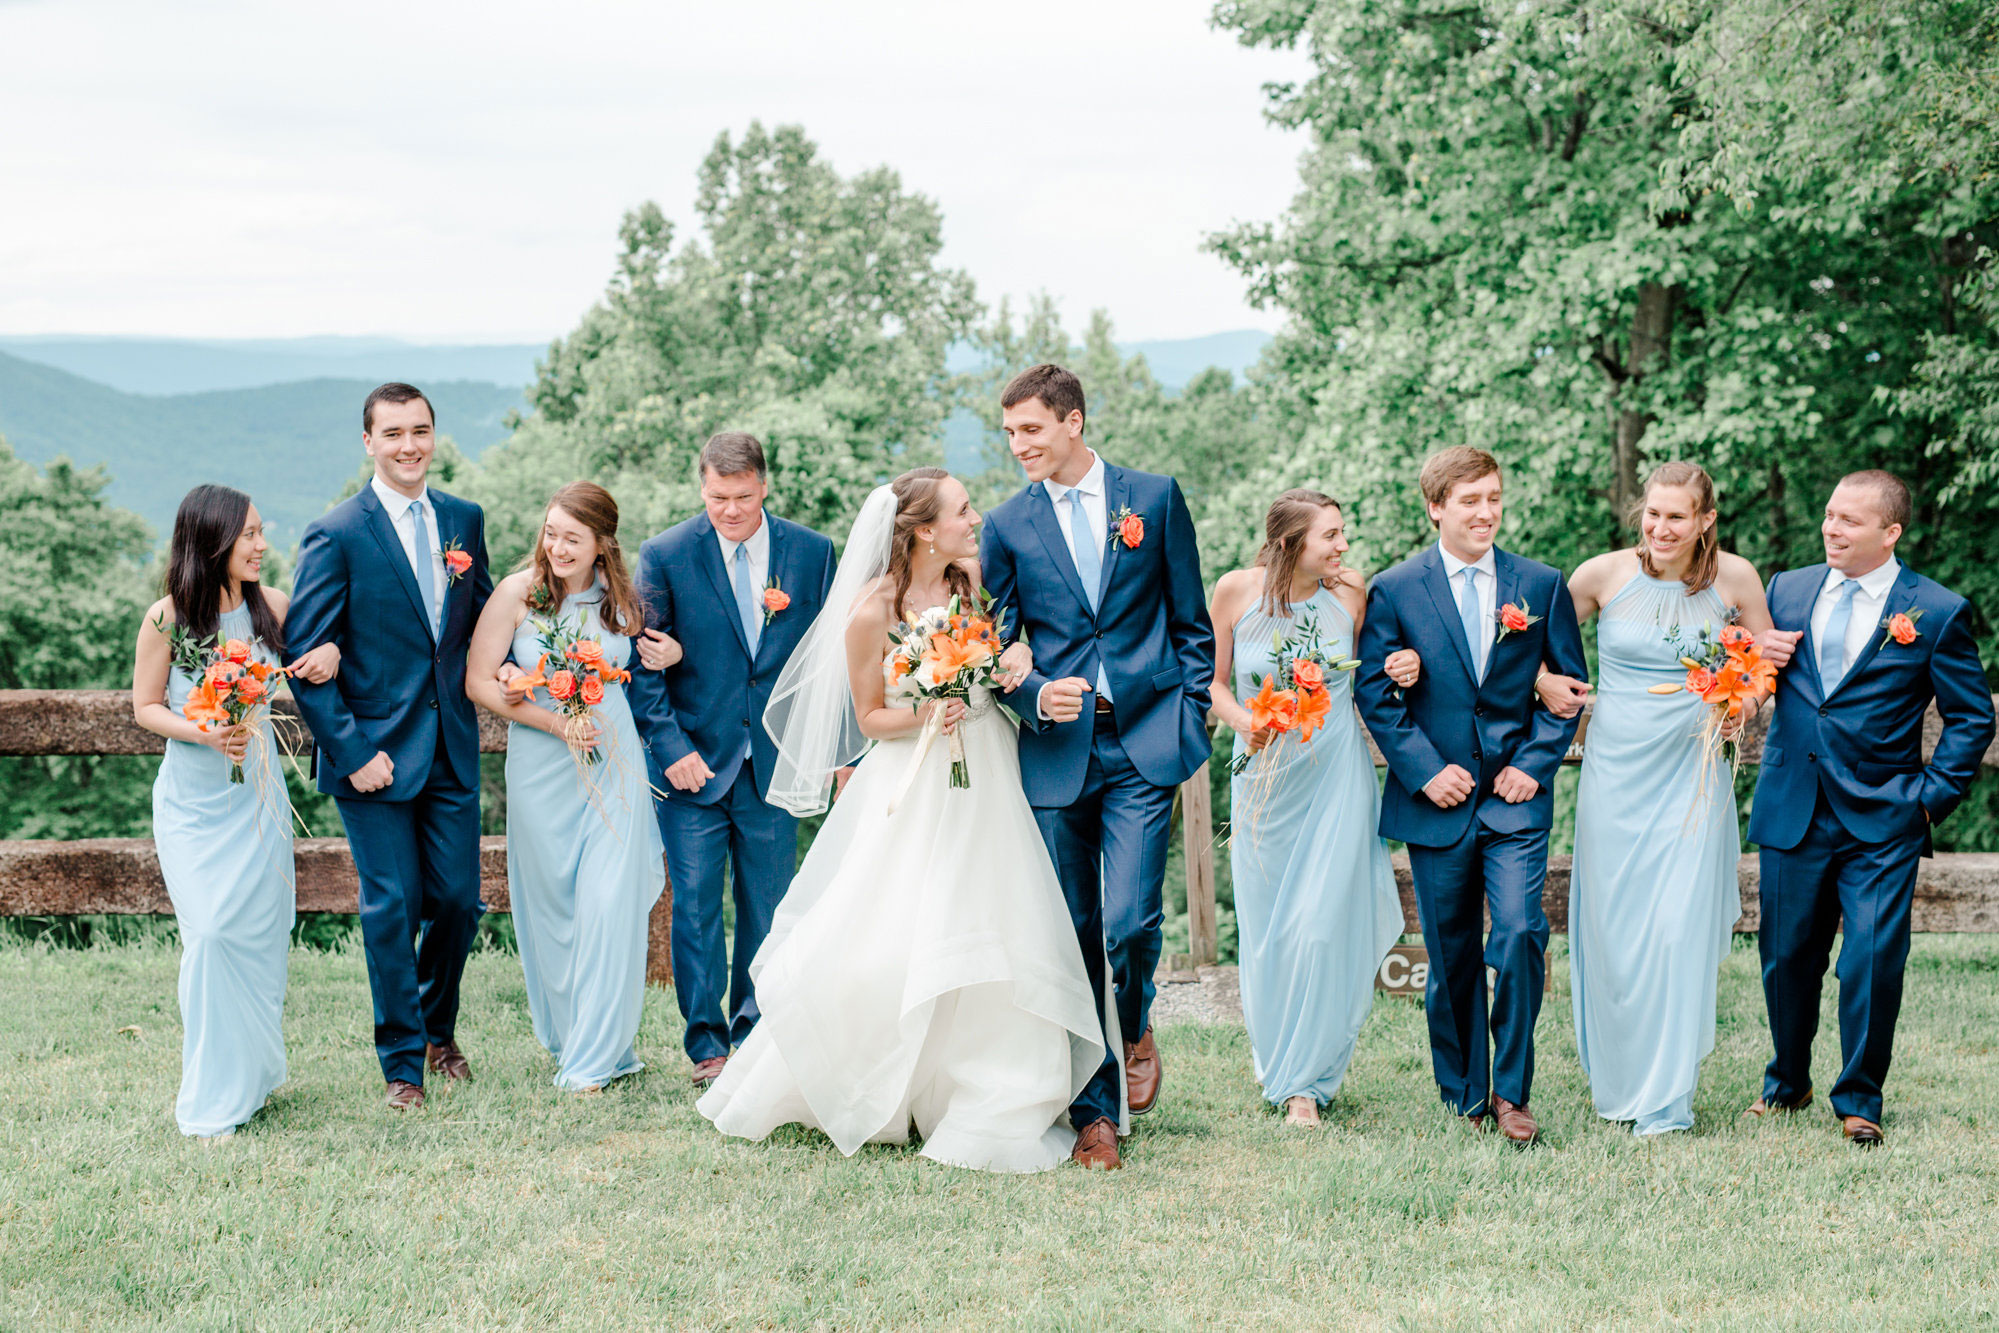 A Roanoke Virginia Wedding with Incredible Mountain Views